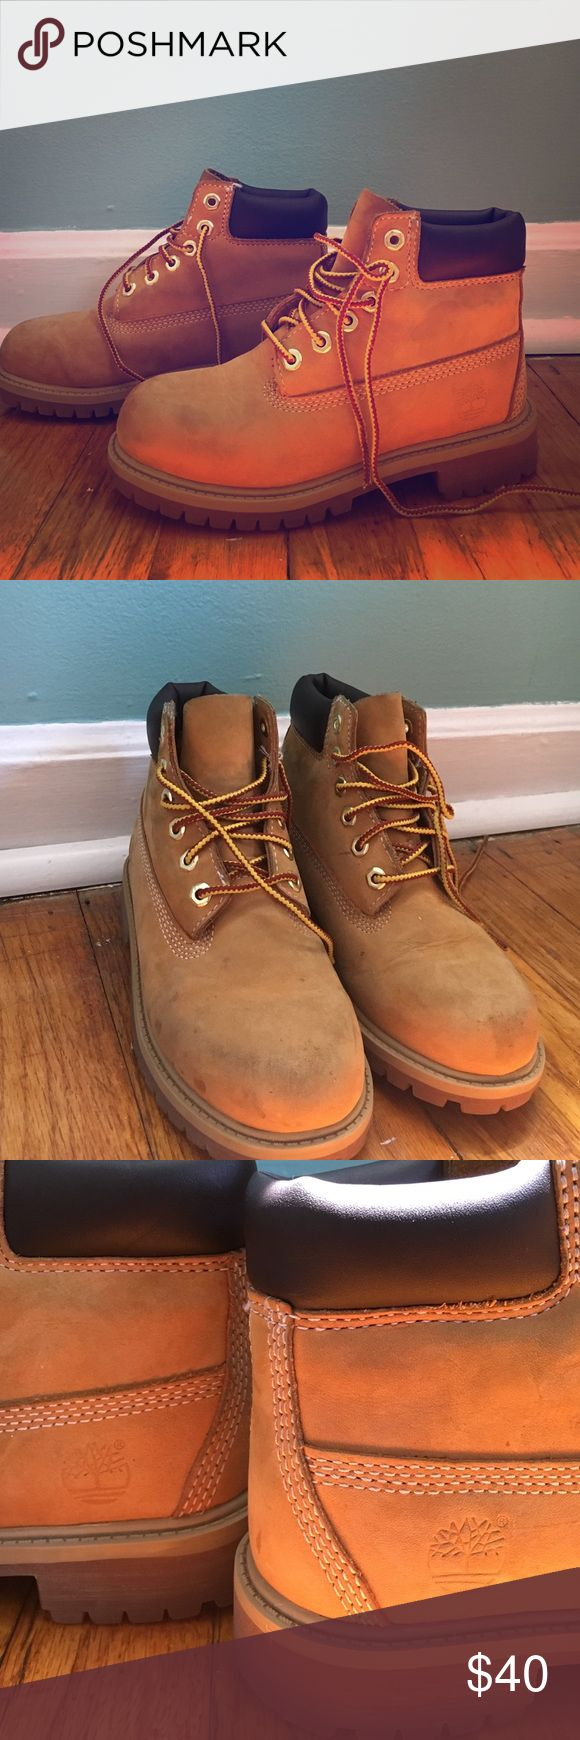 Youth Timberland Boots! Youth Timberland Boots! ✅In good condition ➖Sizing: US 13 Euro 31 ➖lots of life left authentic! minor imperfections (a few stains/spots on the shoe, should come off with suede cleaner) Timberland Shoes Ankle Boots & Booties